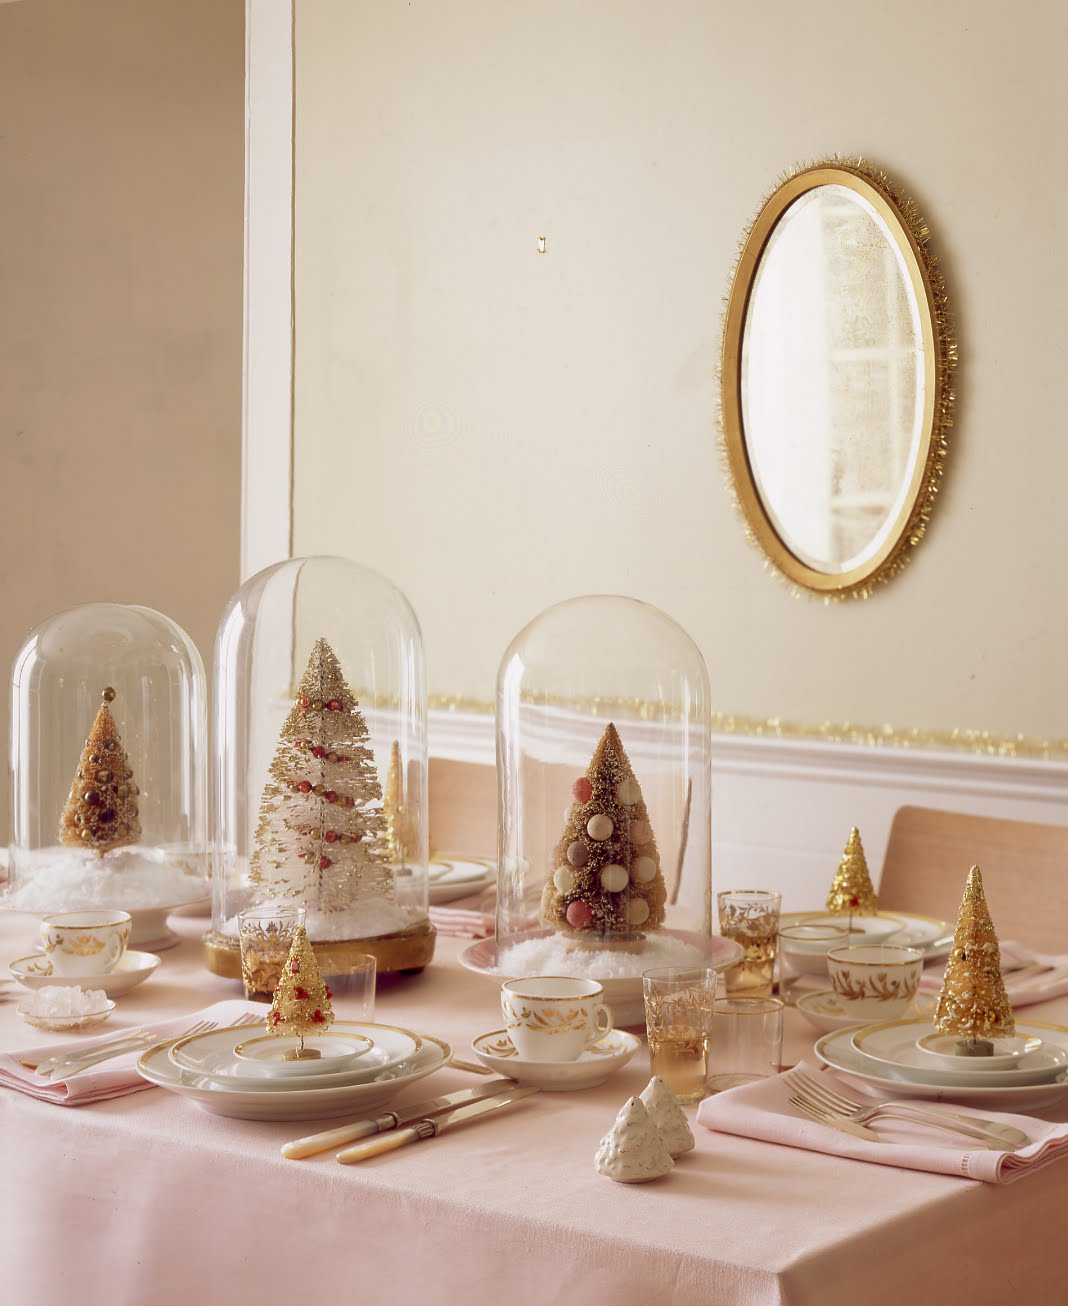 Home Table Decor: (BAD) Blog About Design: Holiday Decorating: The Dining Table